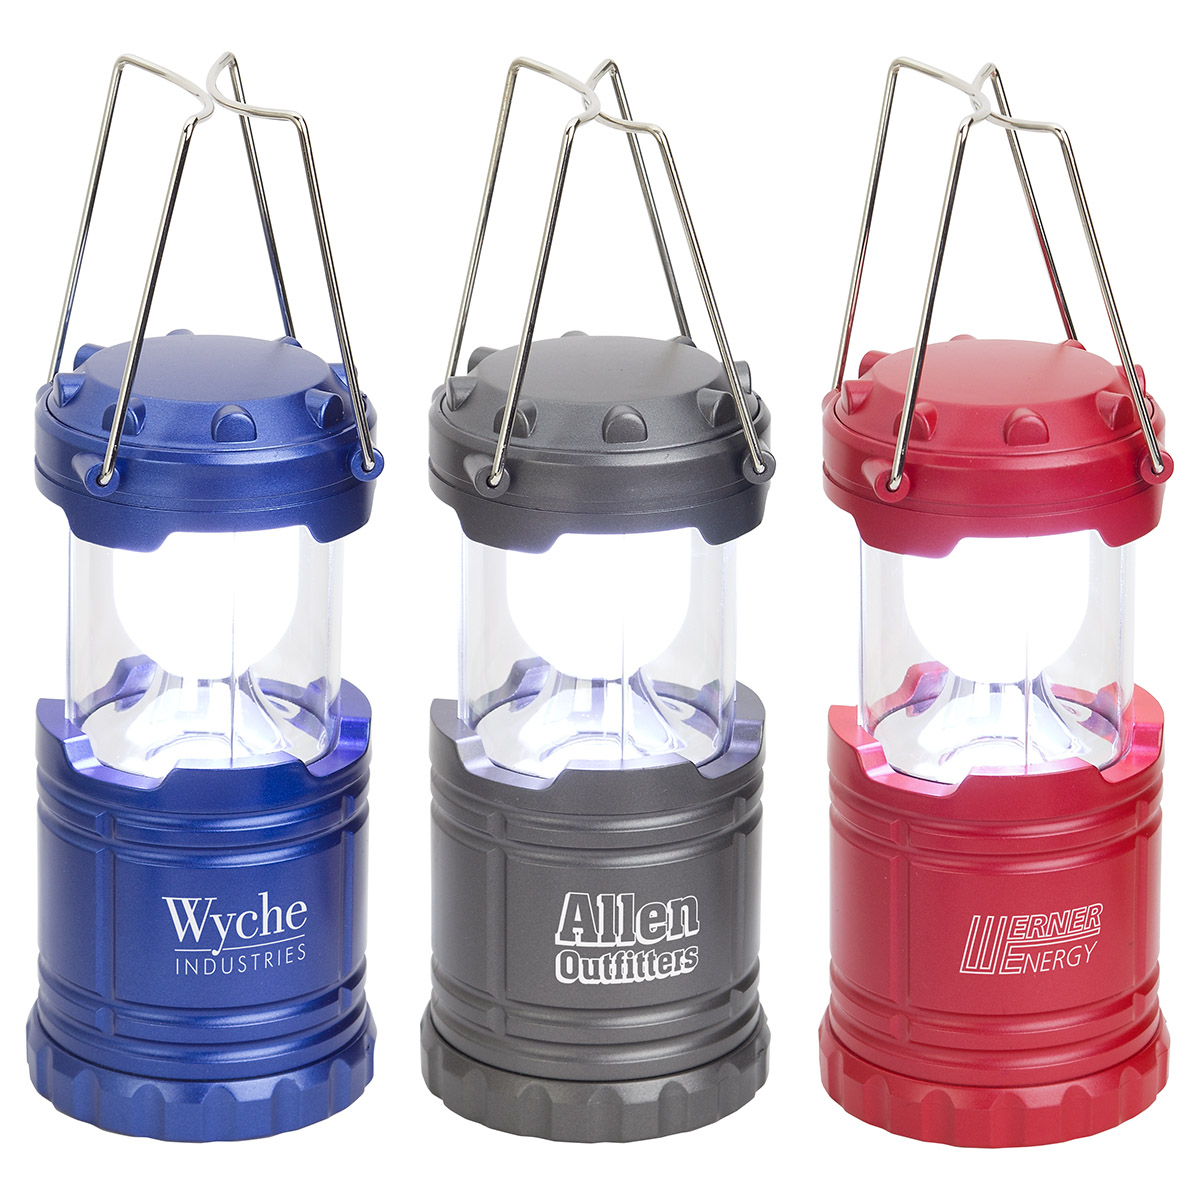 Retro Pop Up Lantern, WLT-RL17, 1 Colour Imprint